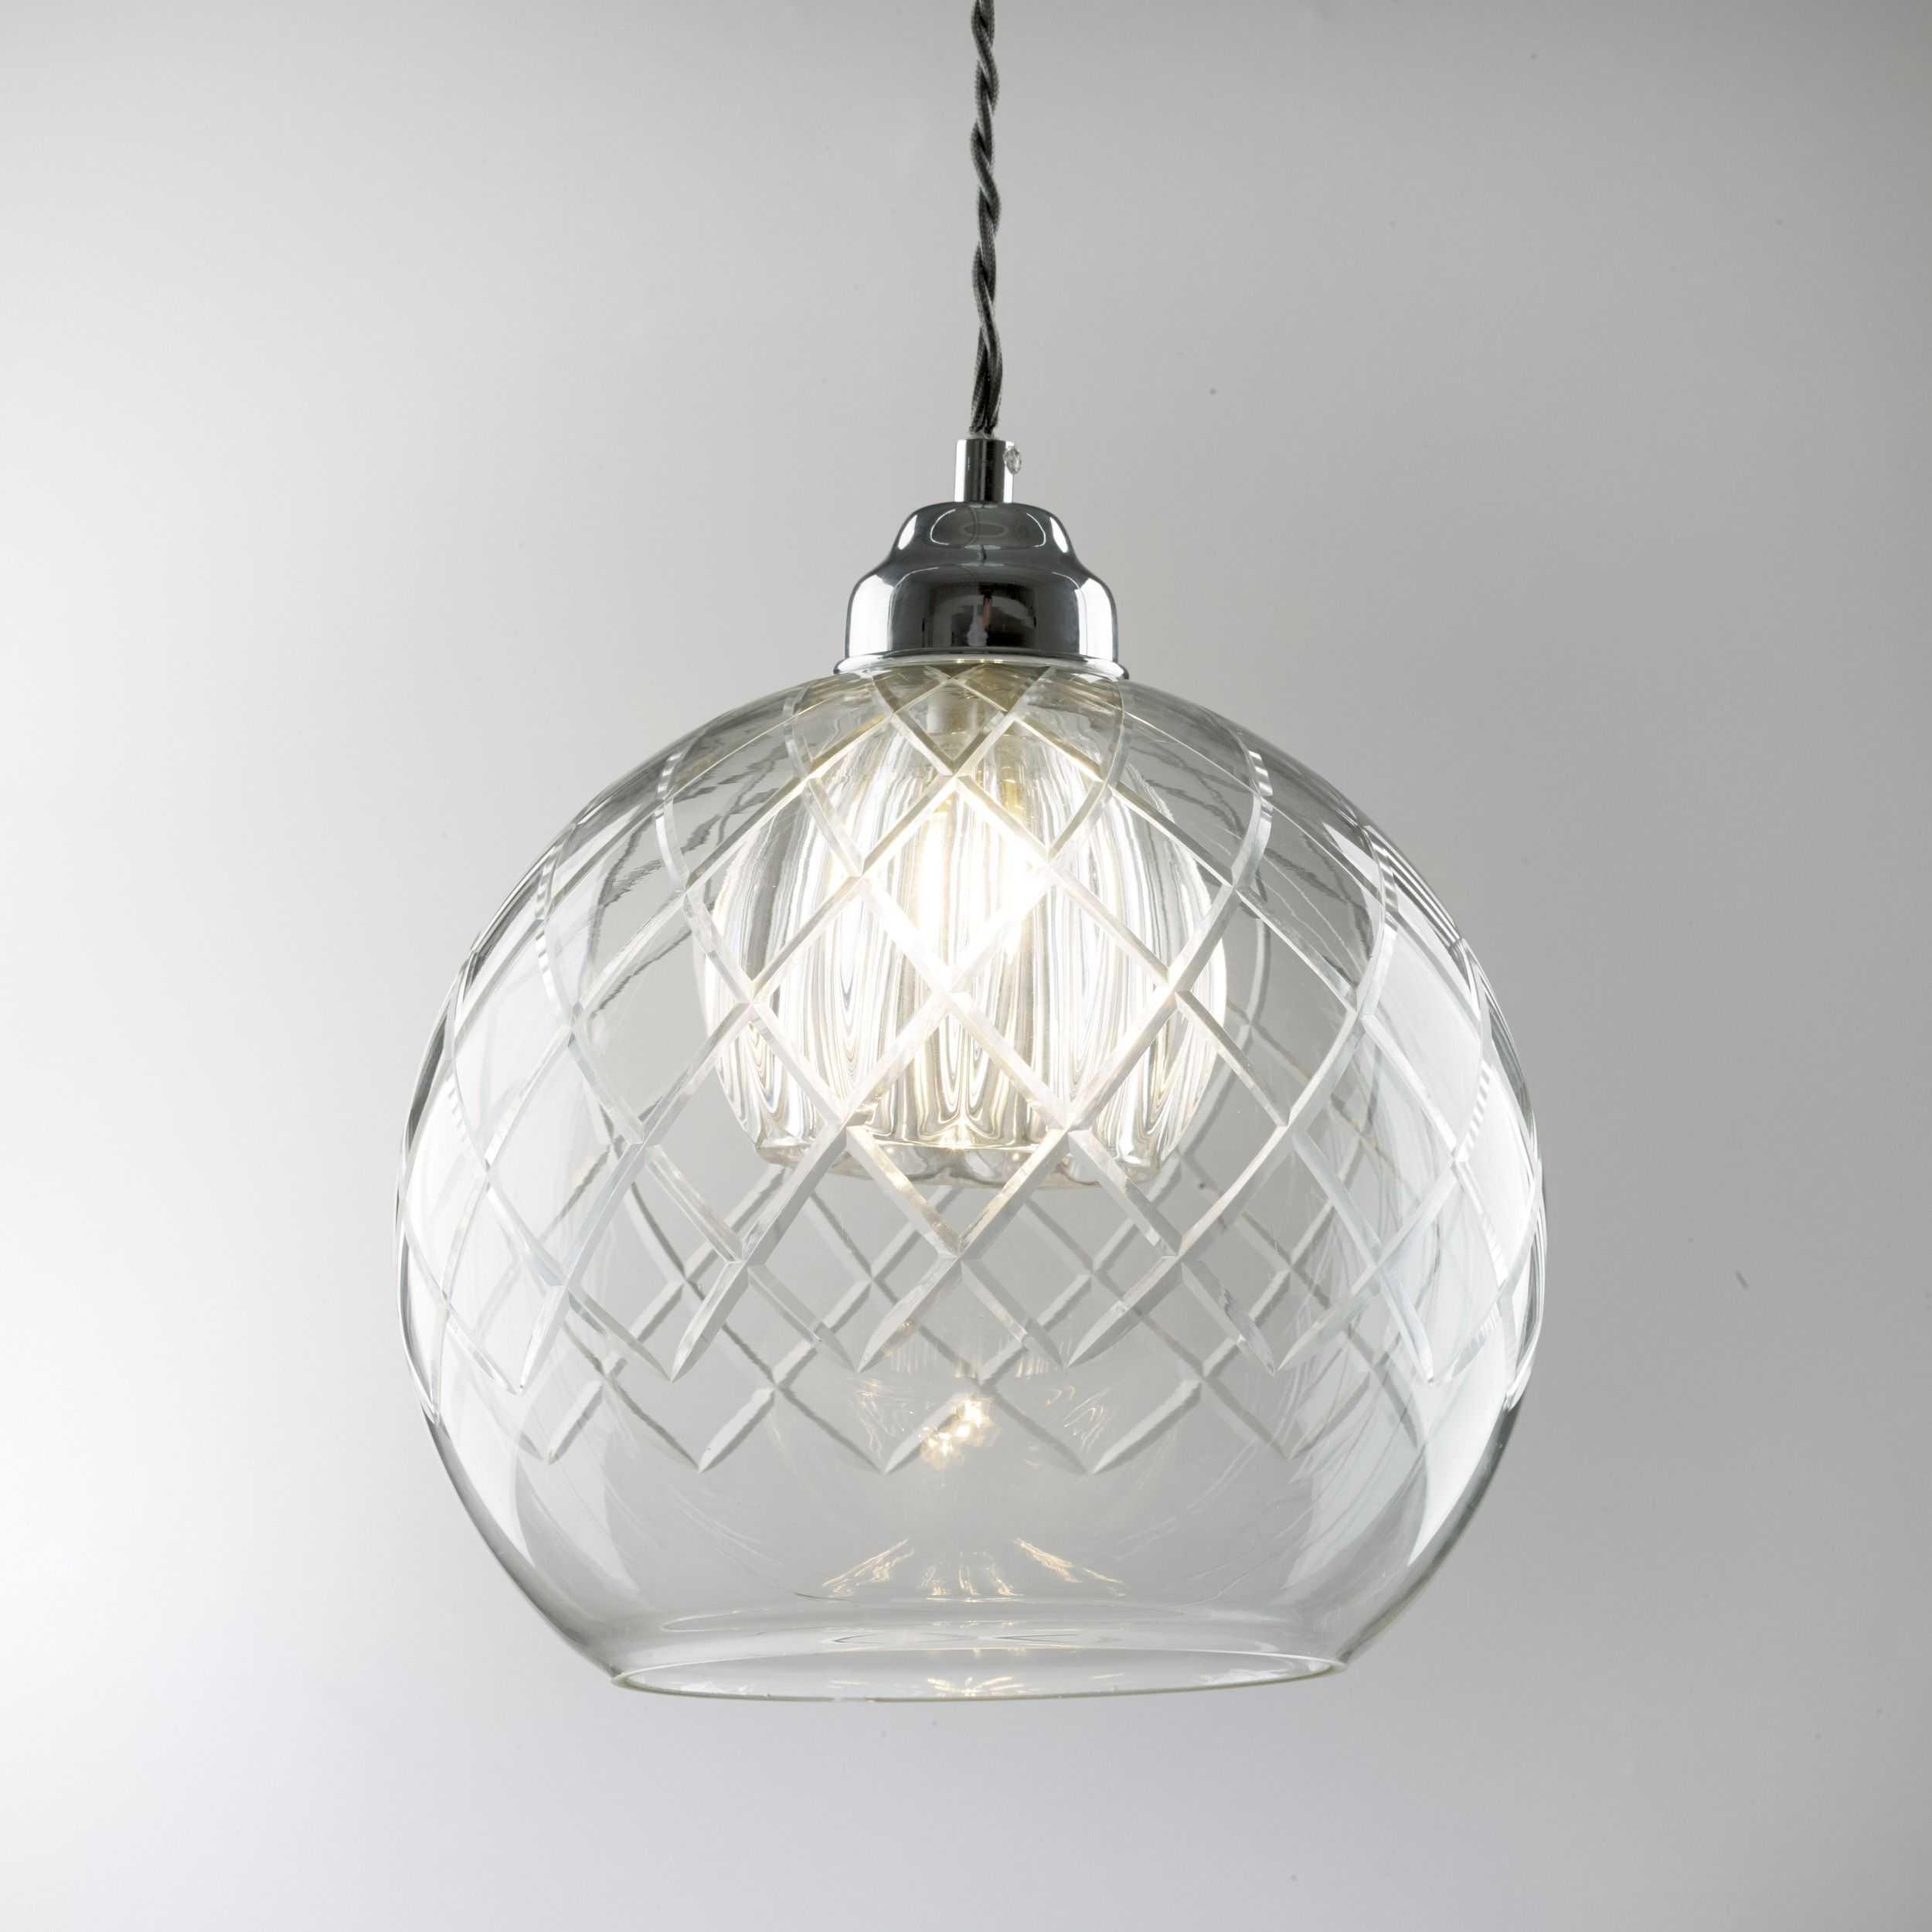 Gabby Glass Ceiling Pendant Light This stunning glass ceiling pendant light  features a cut-glass